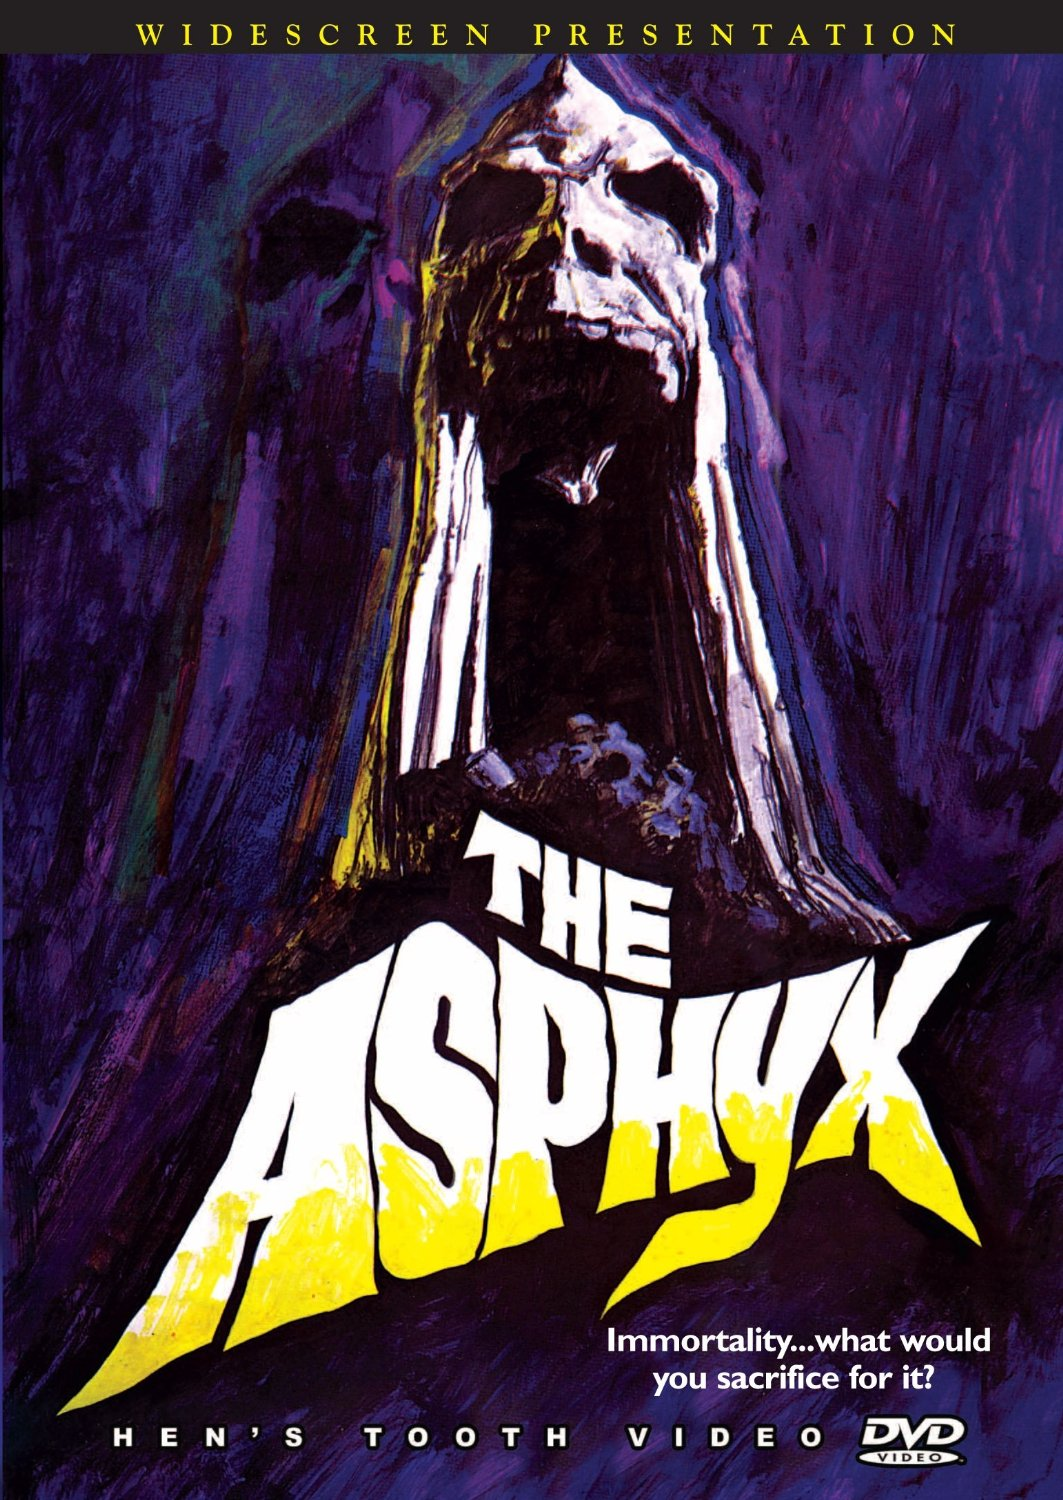 The Asphyx (1973) EXTENDED | BRRip 1080p | Inglés